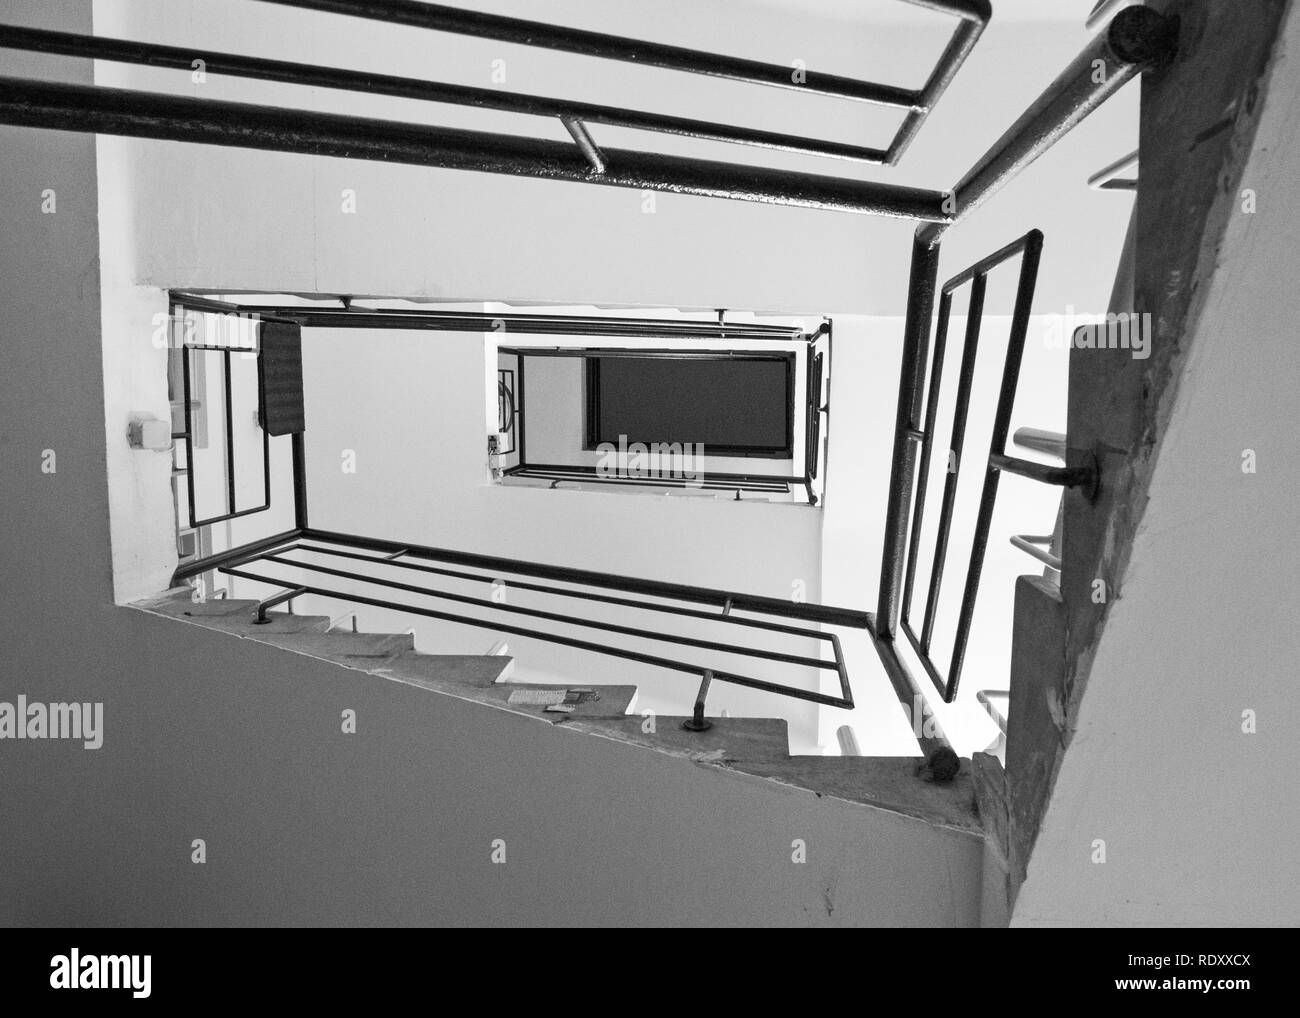 TEL AVIV, ISRAEL - December 28 2018: Staircase in an old Bauhaus Residential building.Tel Aviv has the large number of buildings in the Bauhaus/Intern - Stock Image